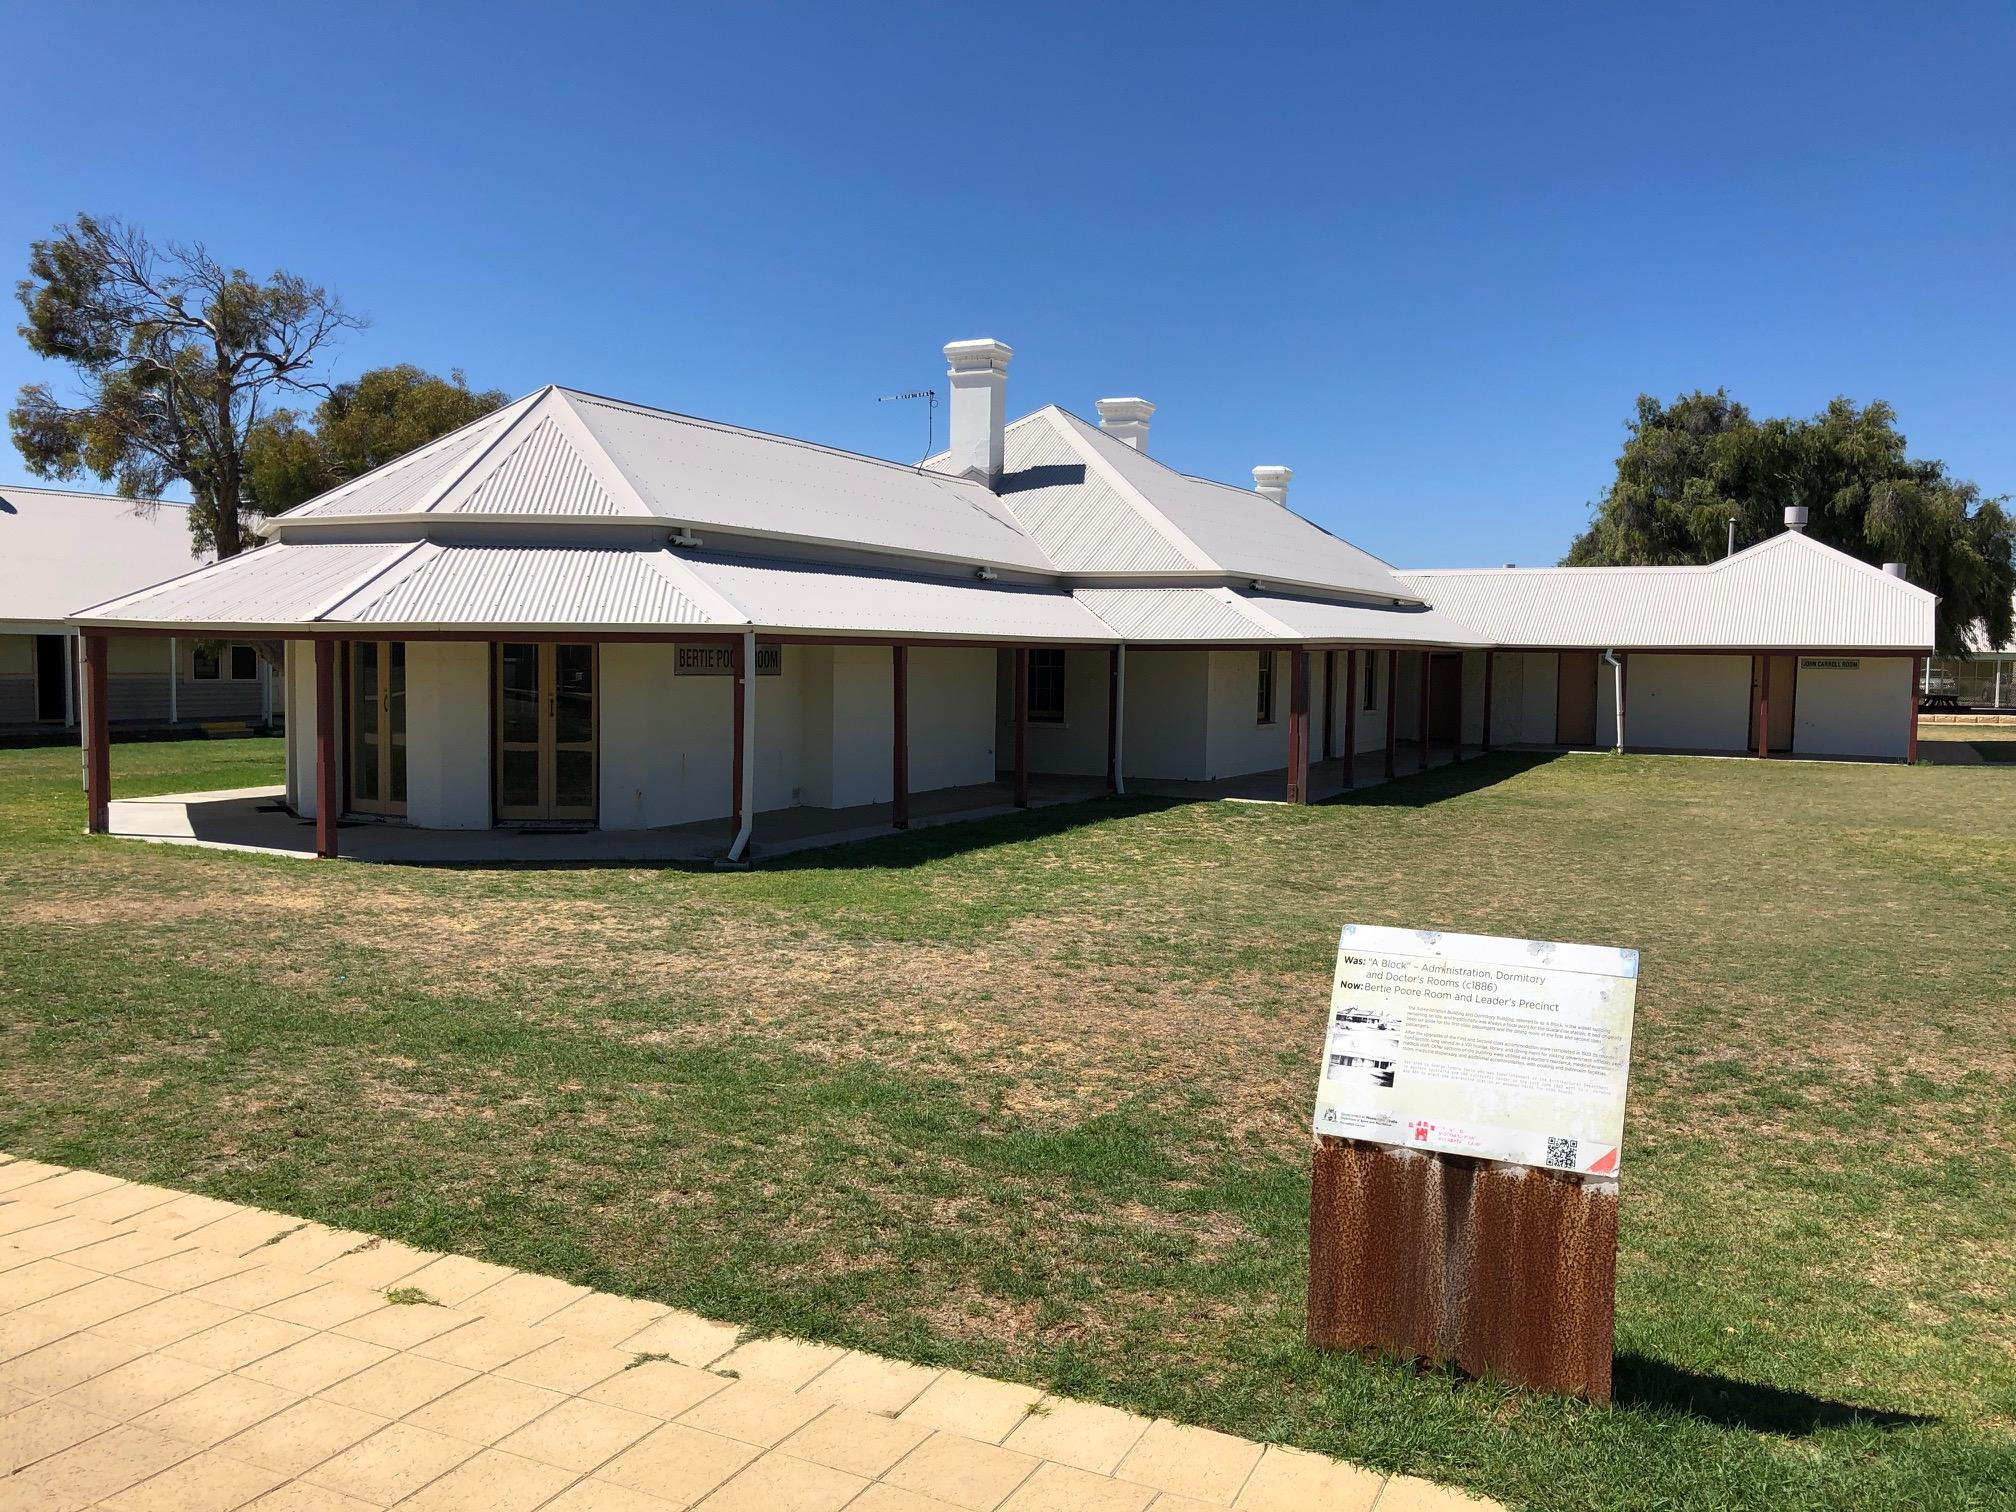 A single story lime wash cream stone building with three chimneys and wide verandahs is set amongst lawn. It originally included the quarantine station's medical officer residence and dates to around eighteen eighty six.